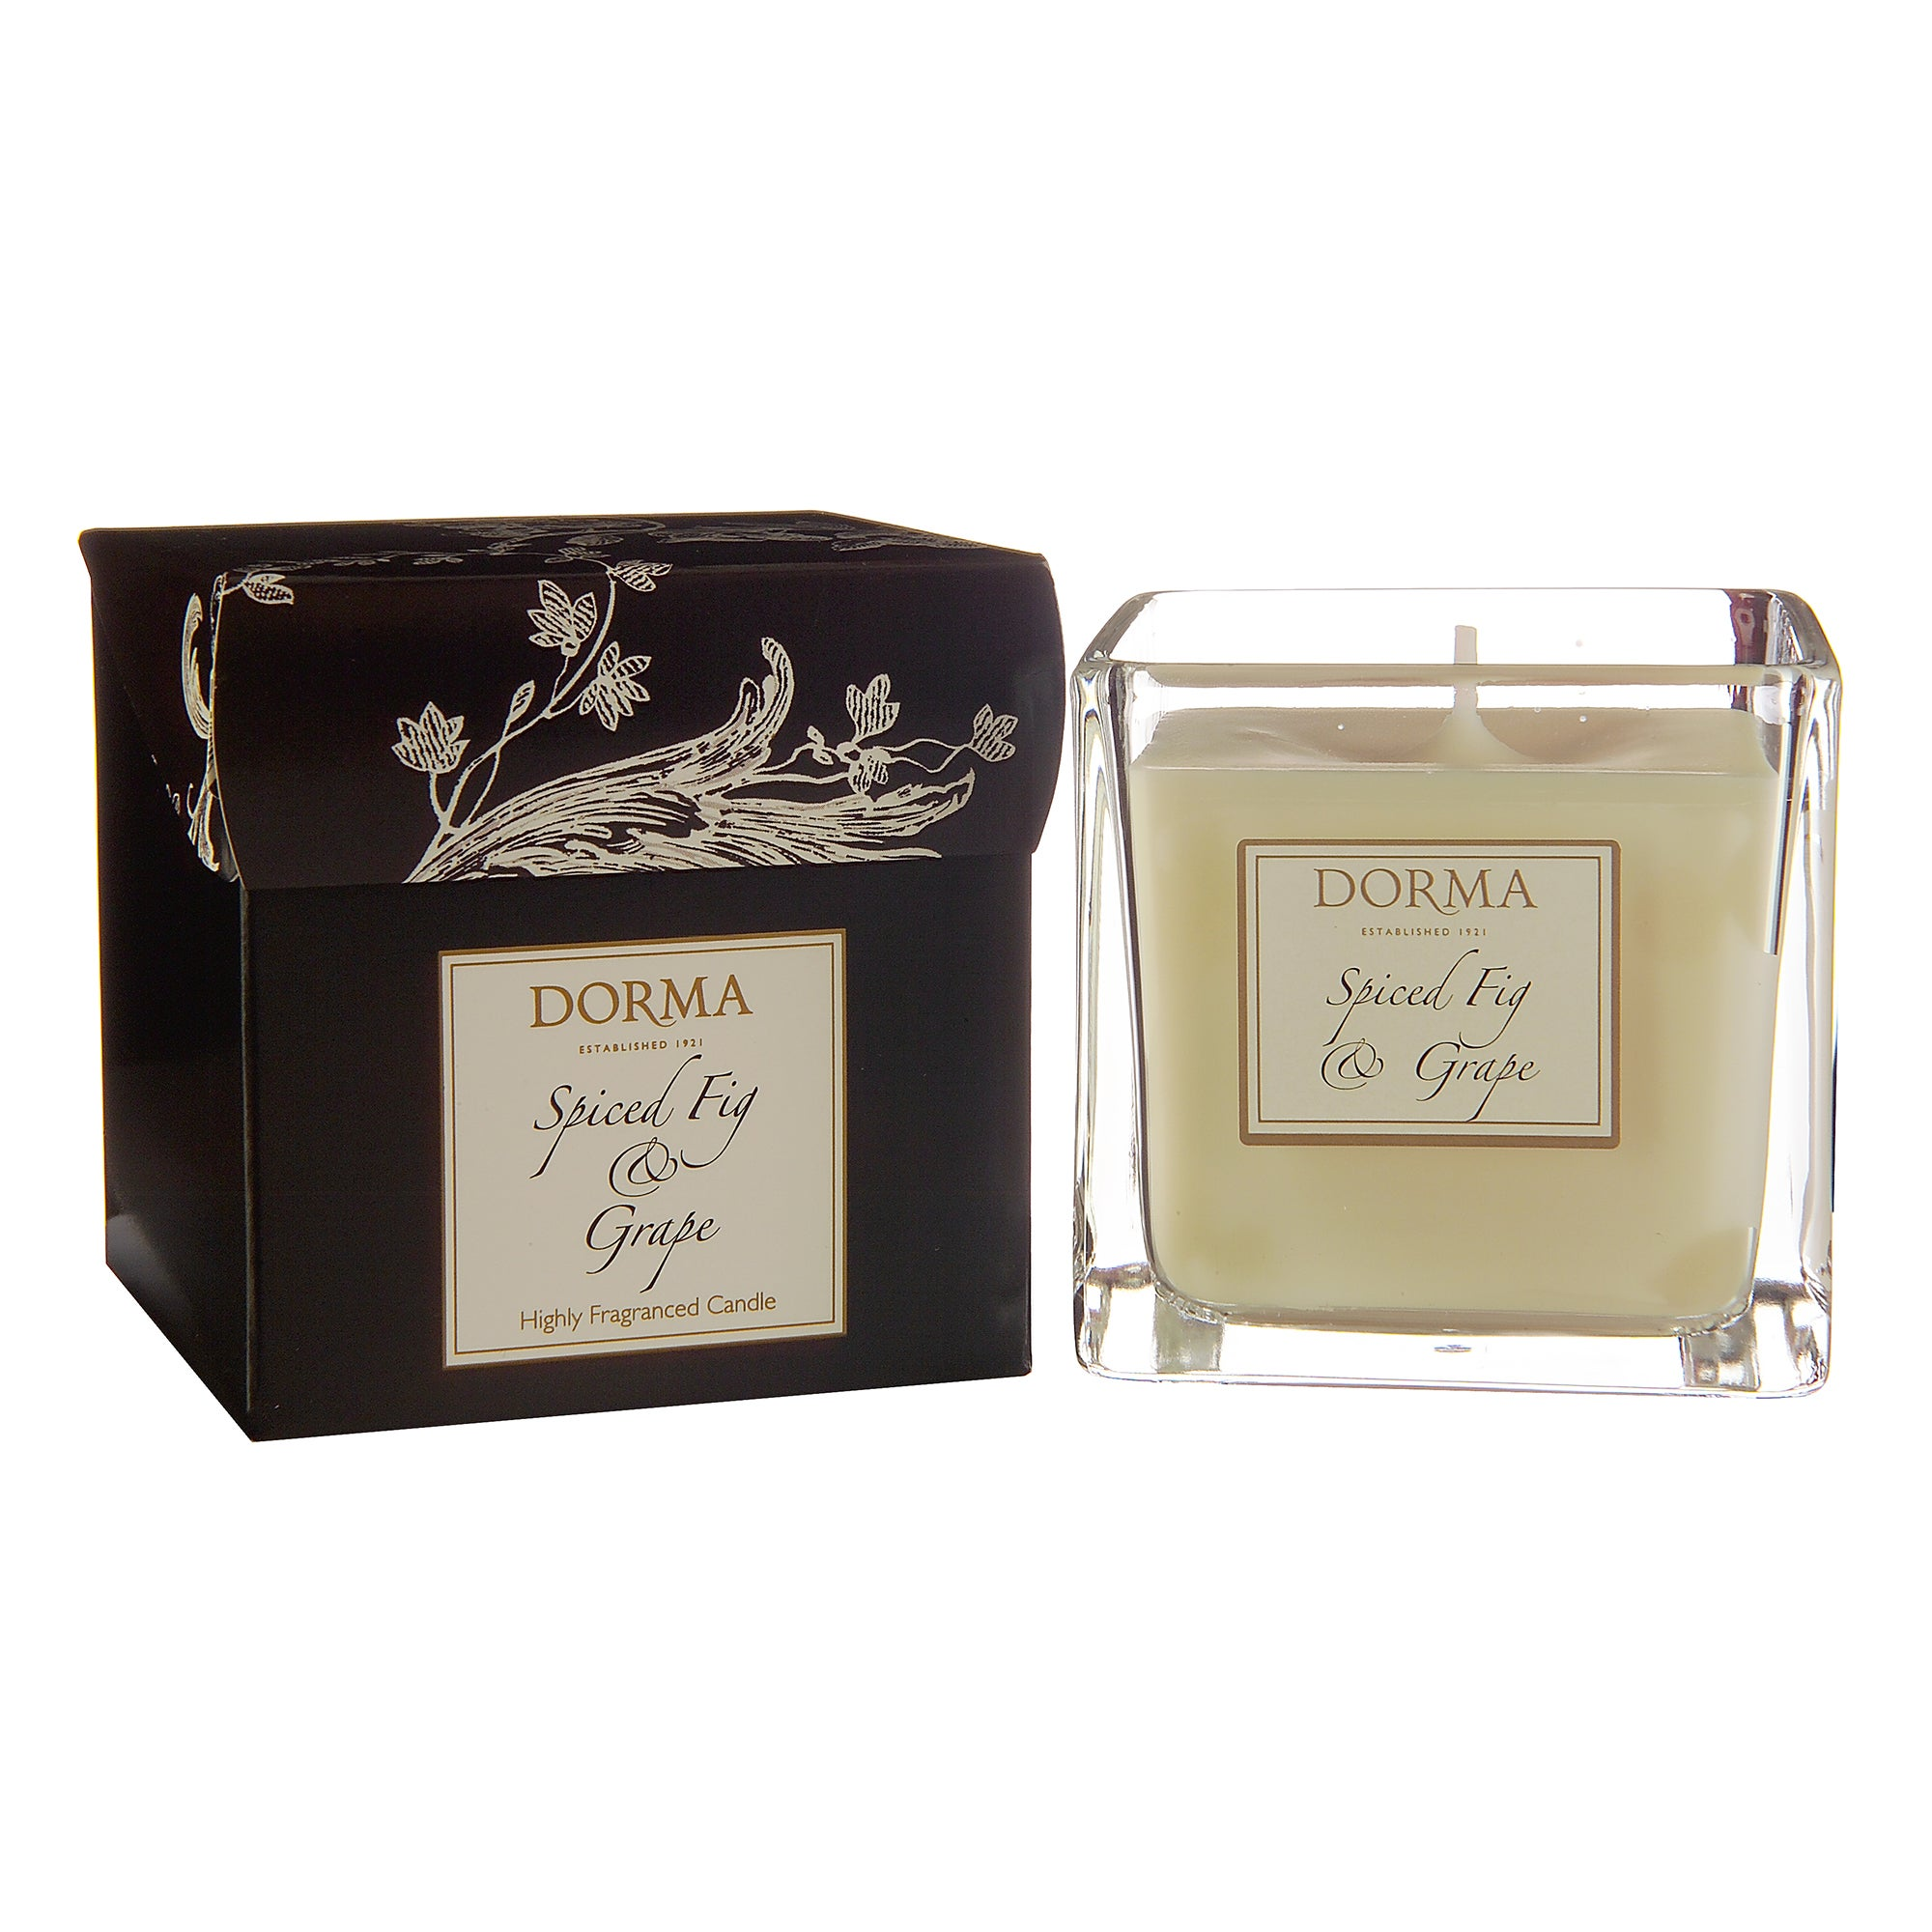 Dorma Spiced Fig and Grape Wax Filled Glass Candle